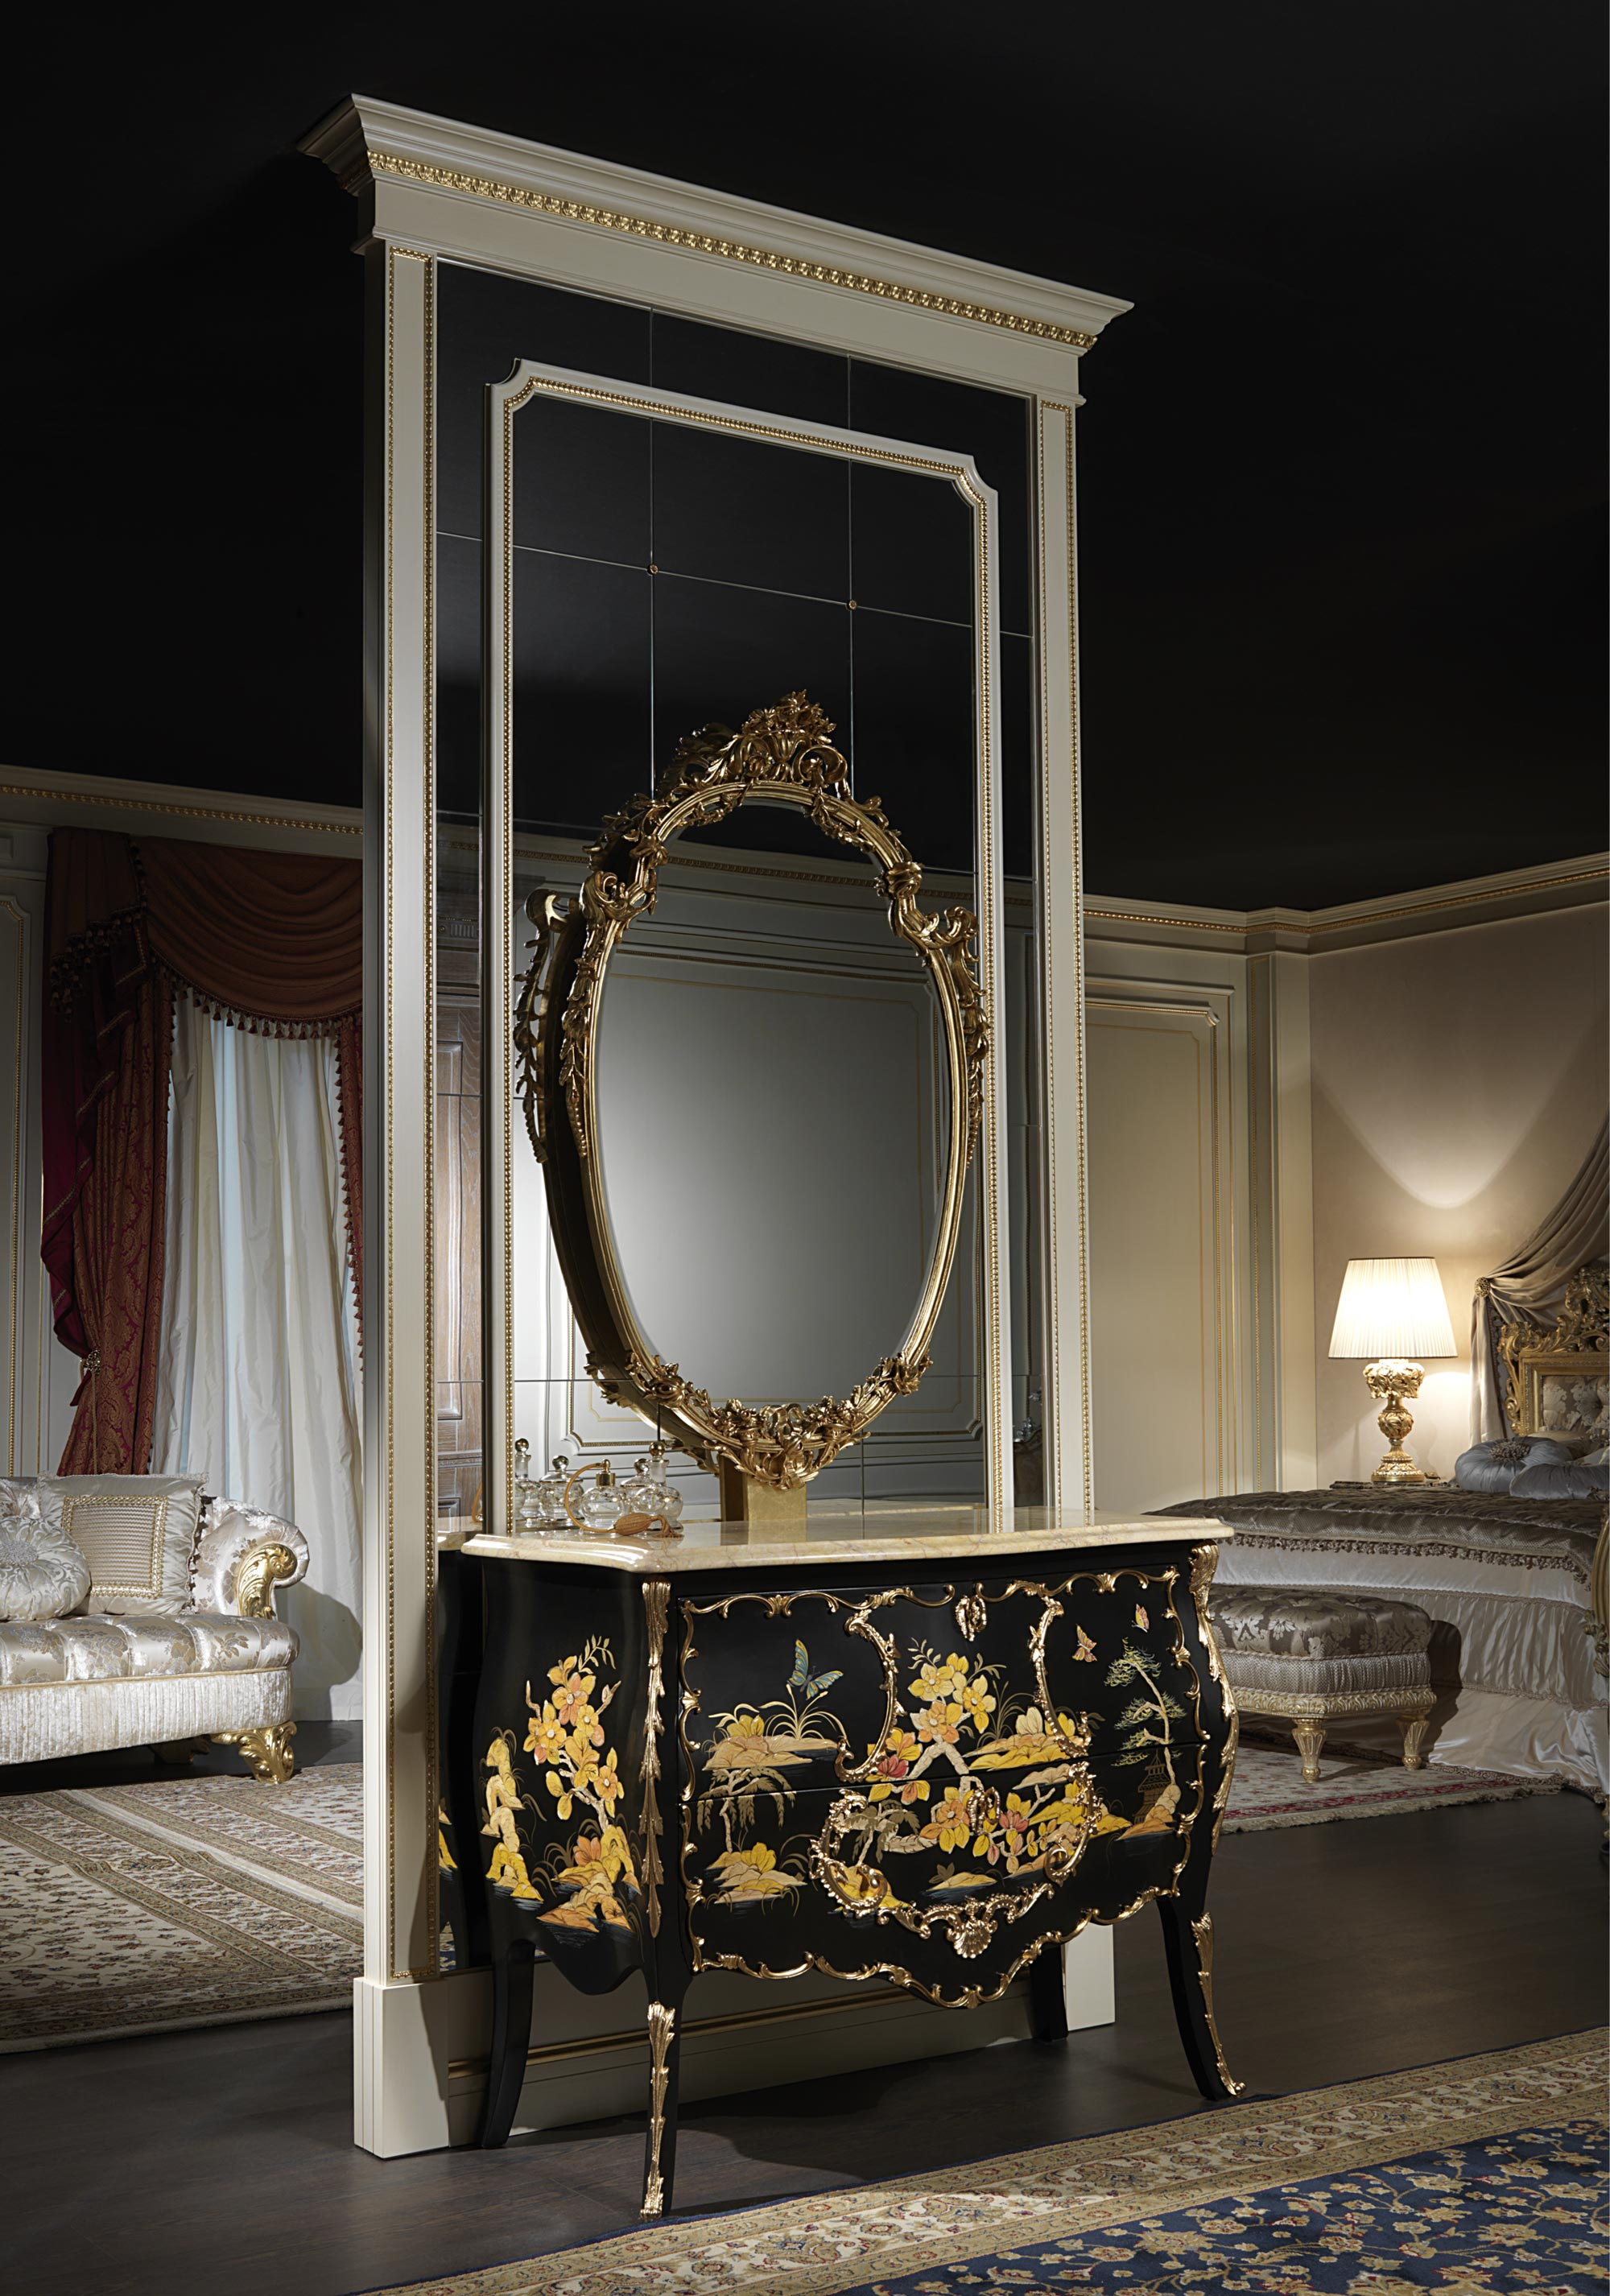 Modern hotel room interior stock photo image 18197840 - Louis Xv Classic Furniture Between Baroque And Exotic Charm The